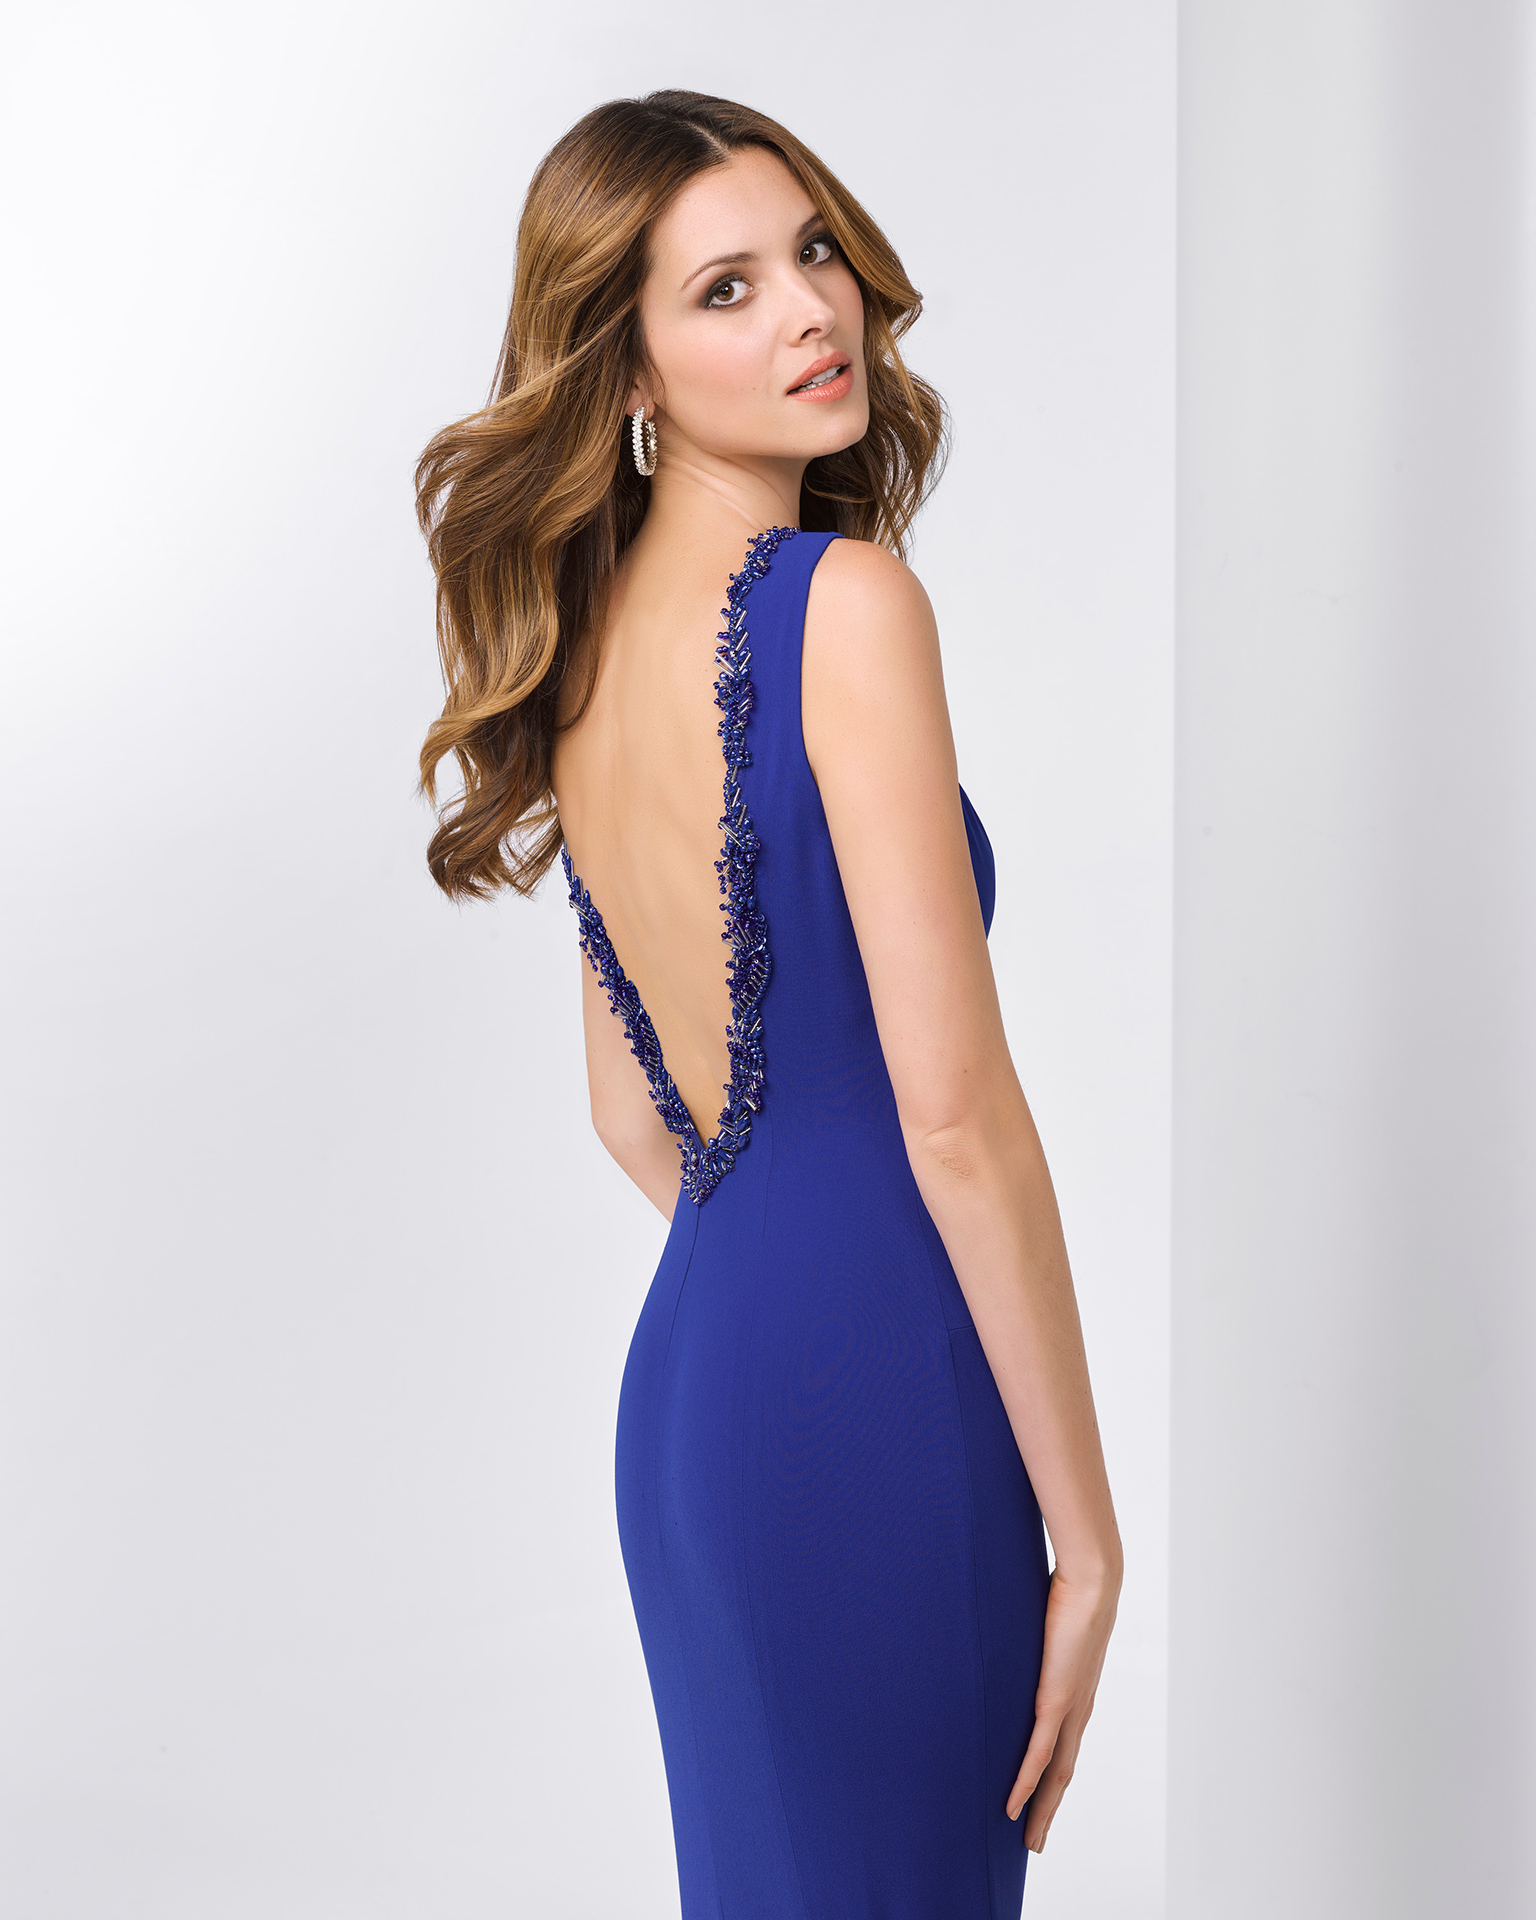 Crepe cocktail dress with bateau neckline, V-back and beading on neck and back. Available in cobalt, green, red and navy blue. 2018 FIESTA AIRE BARCELONA Collection.